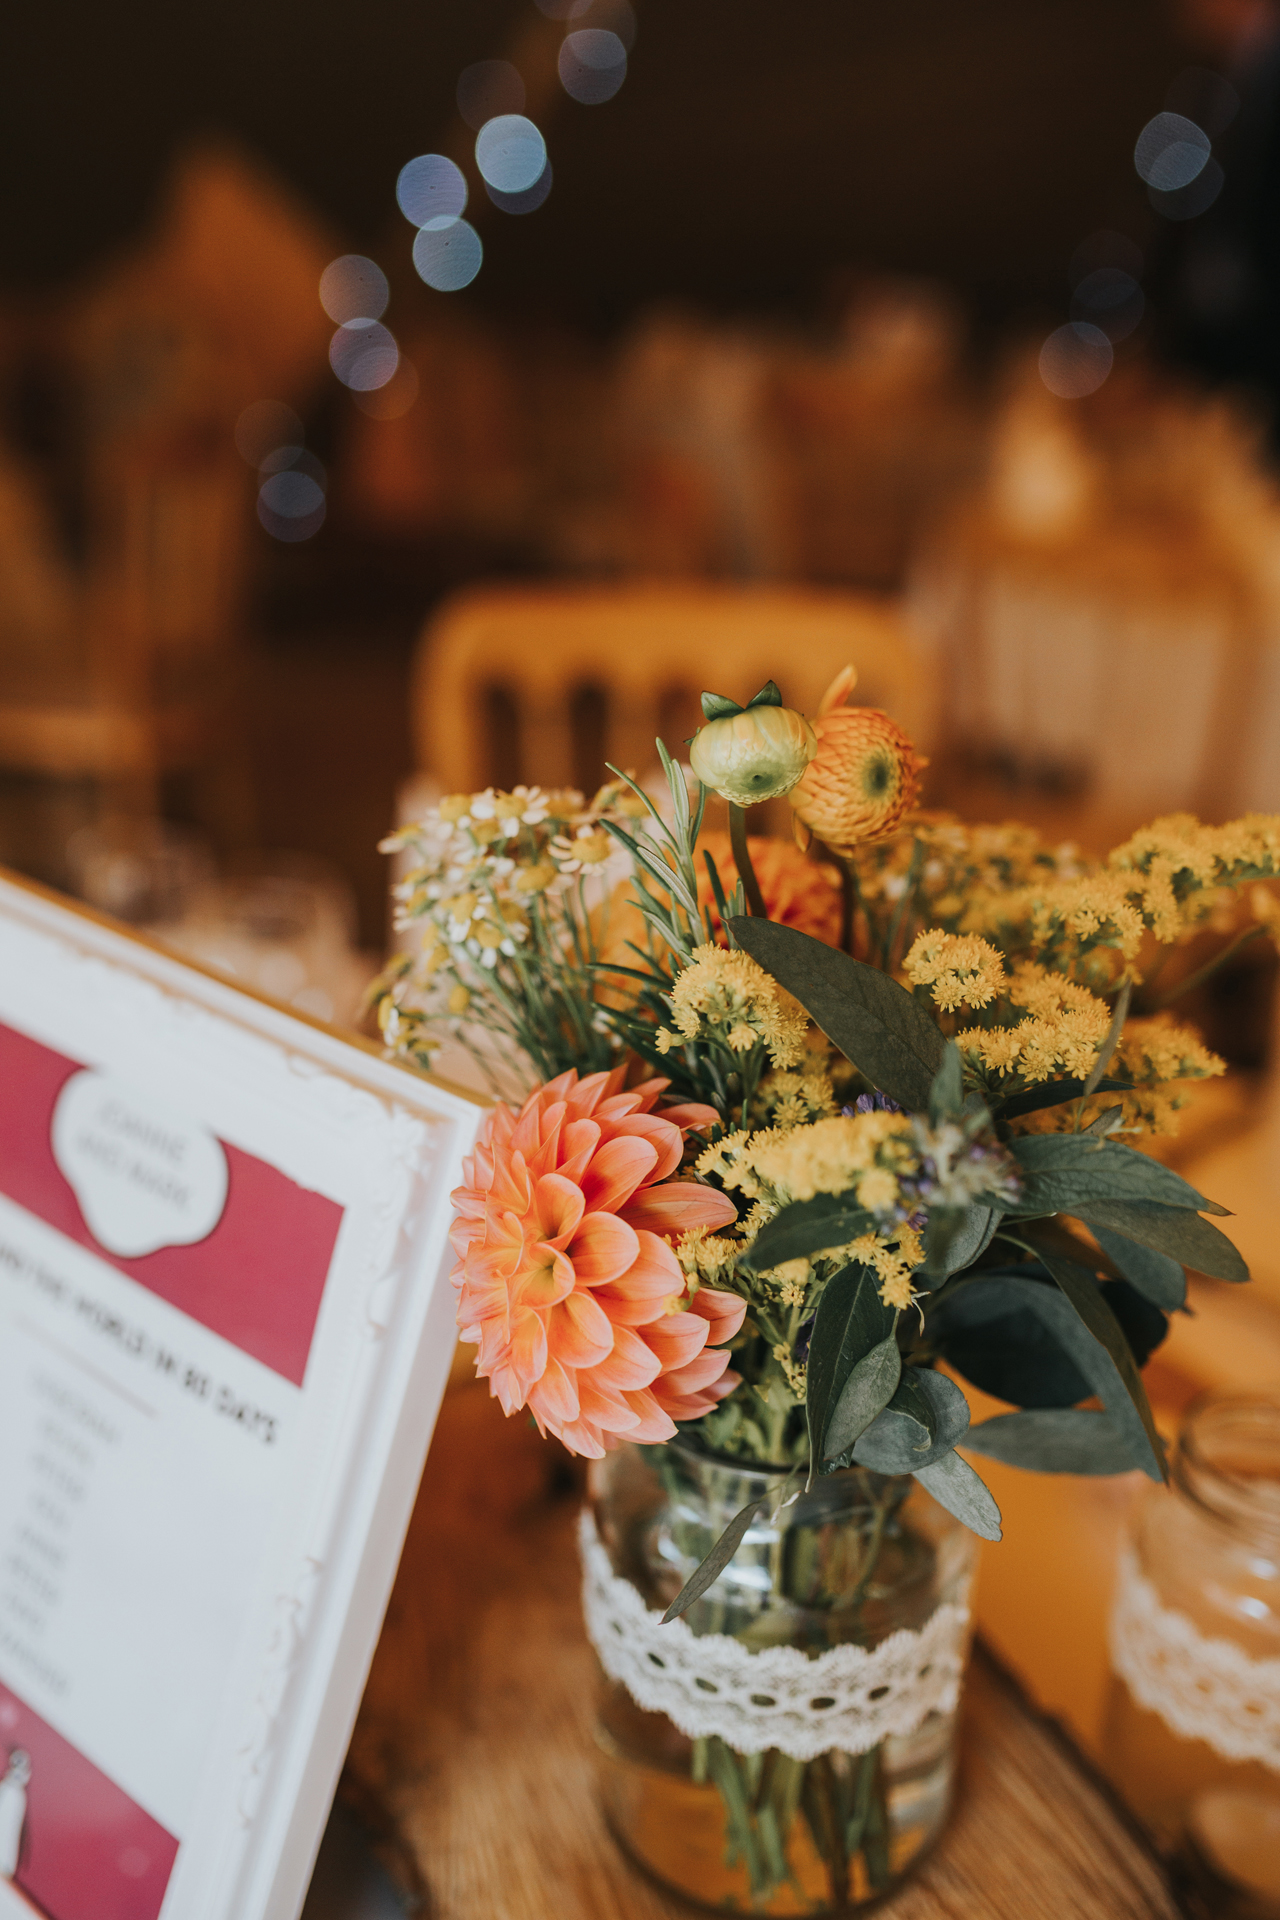 Flowers on wedding tables.